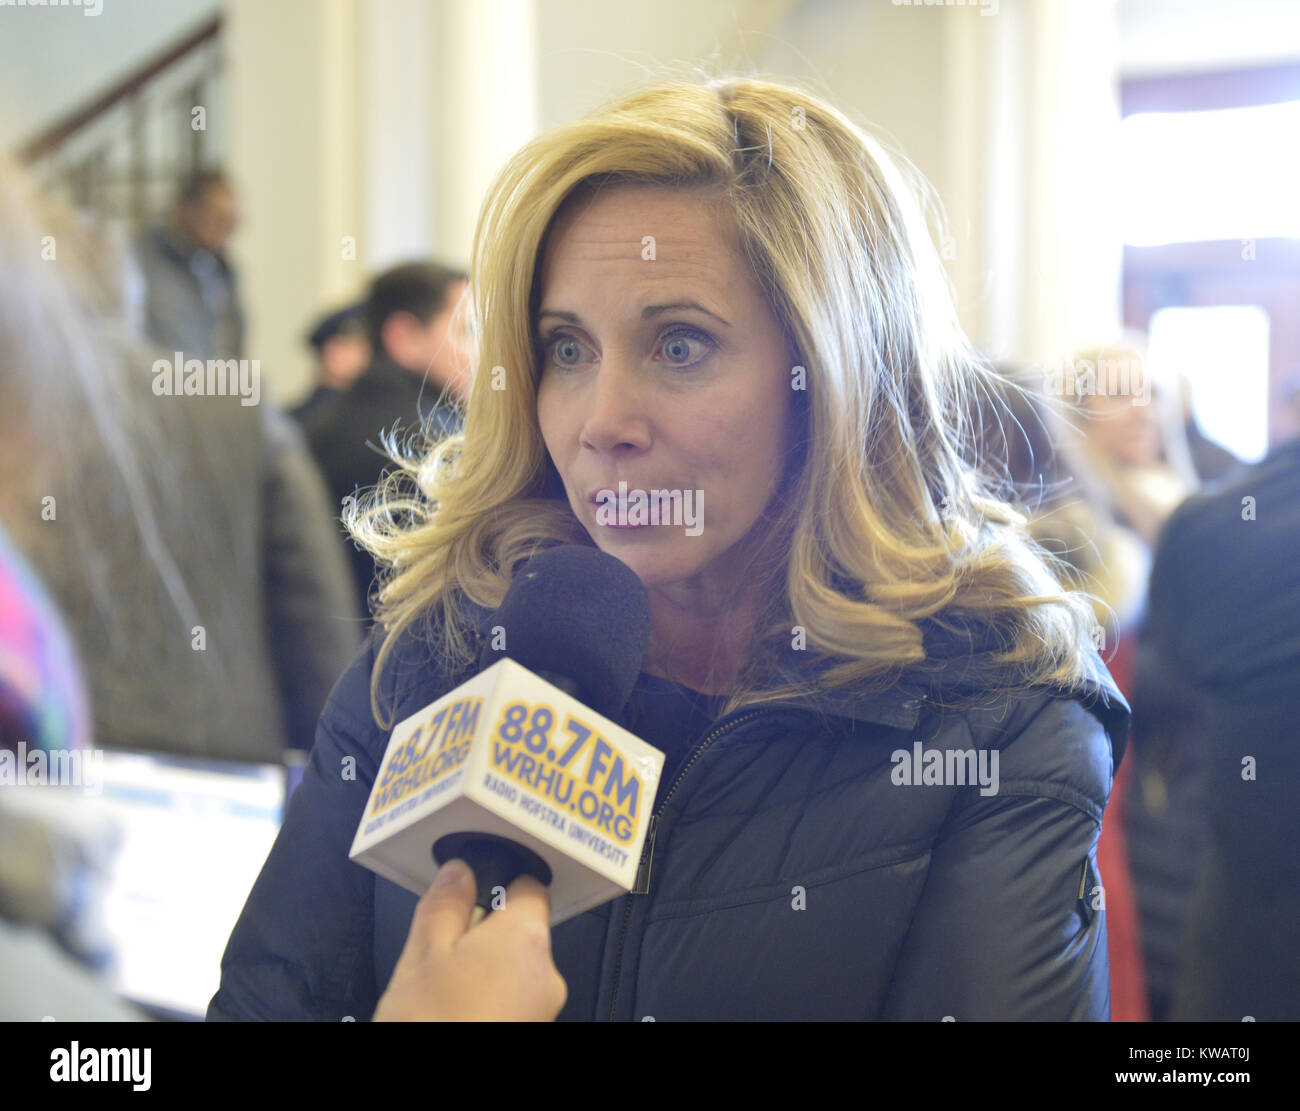 Mineola, New York, USA. 1st Jan, 2018. Town of Hempstead Supervisor LAURA GILLEN, a Democrat, is interviewed by - Stock Image